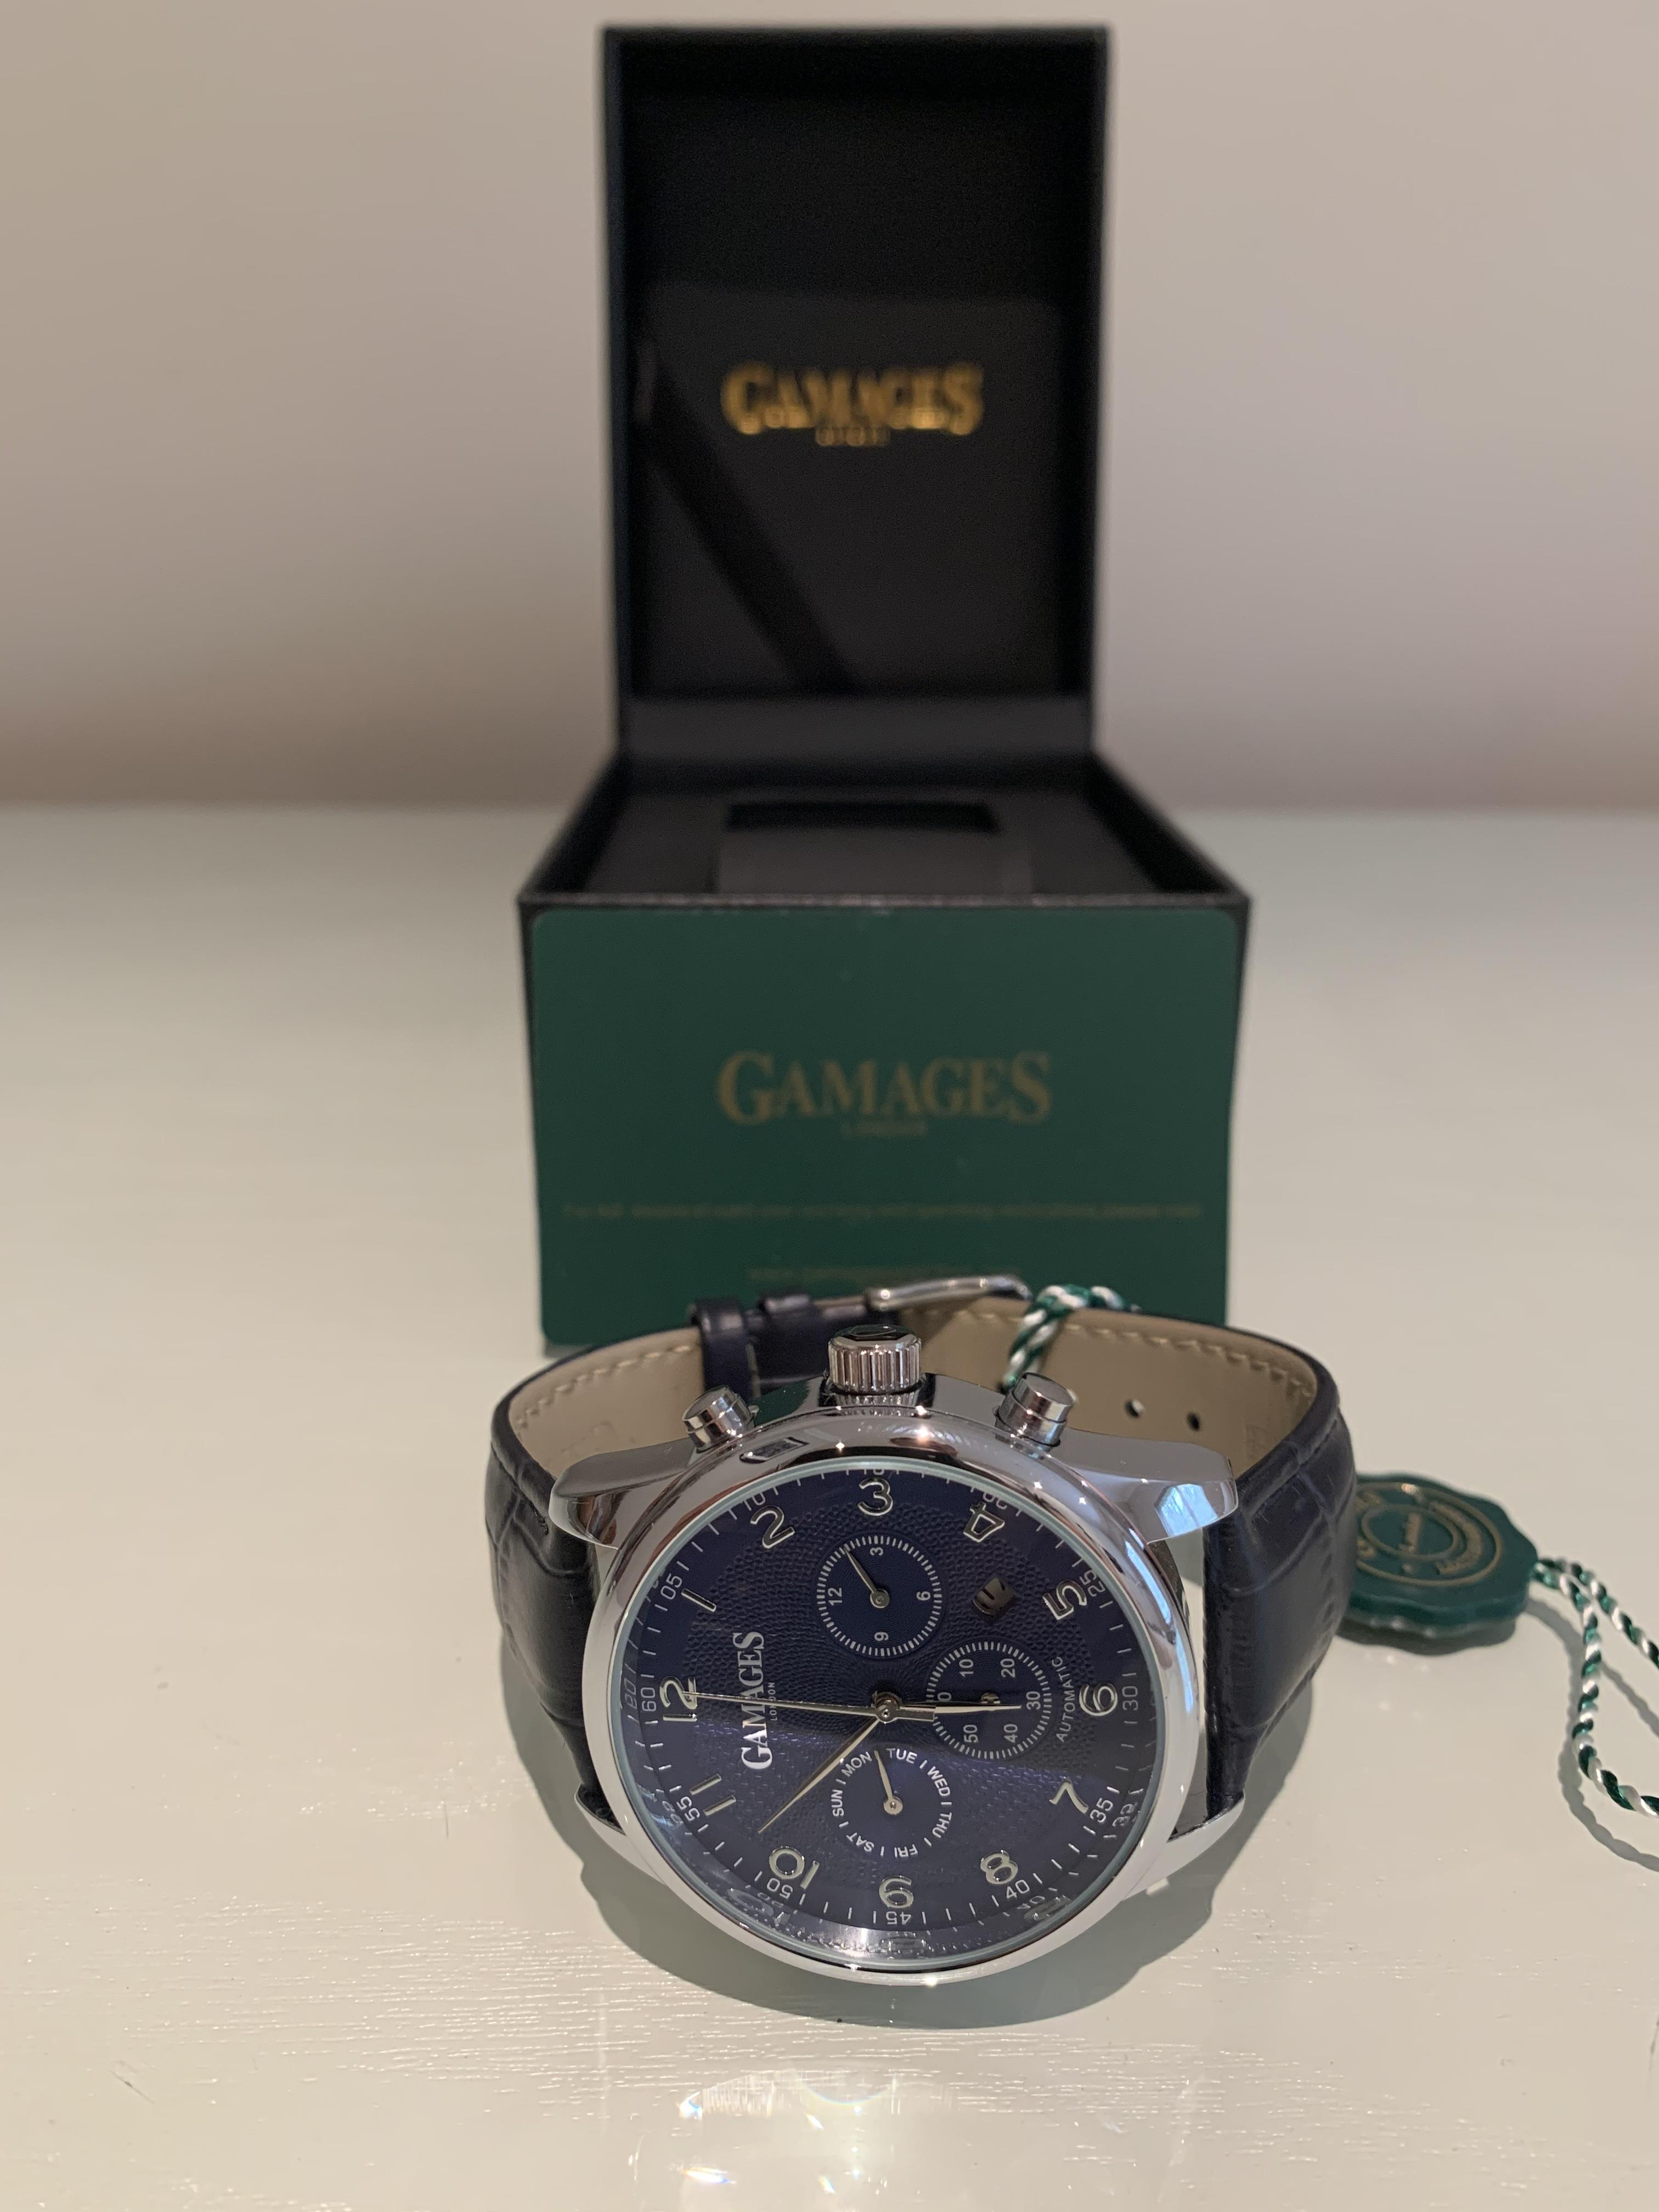 Limited Edition Hand Assembled Gamages Enigmatic Automatic Steel – 5 Year Warranty & Free Delivery - Image 2 of 5